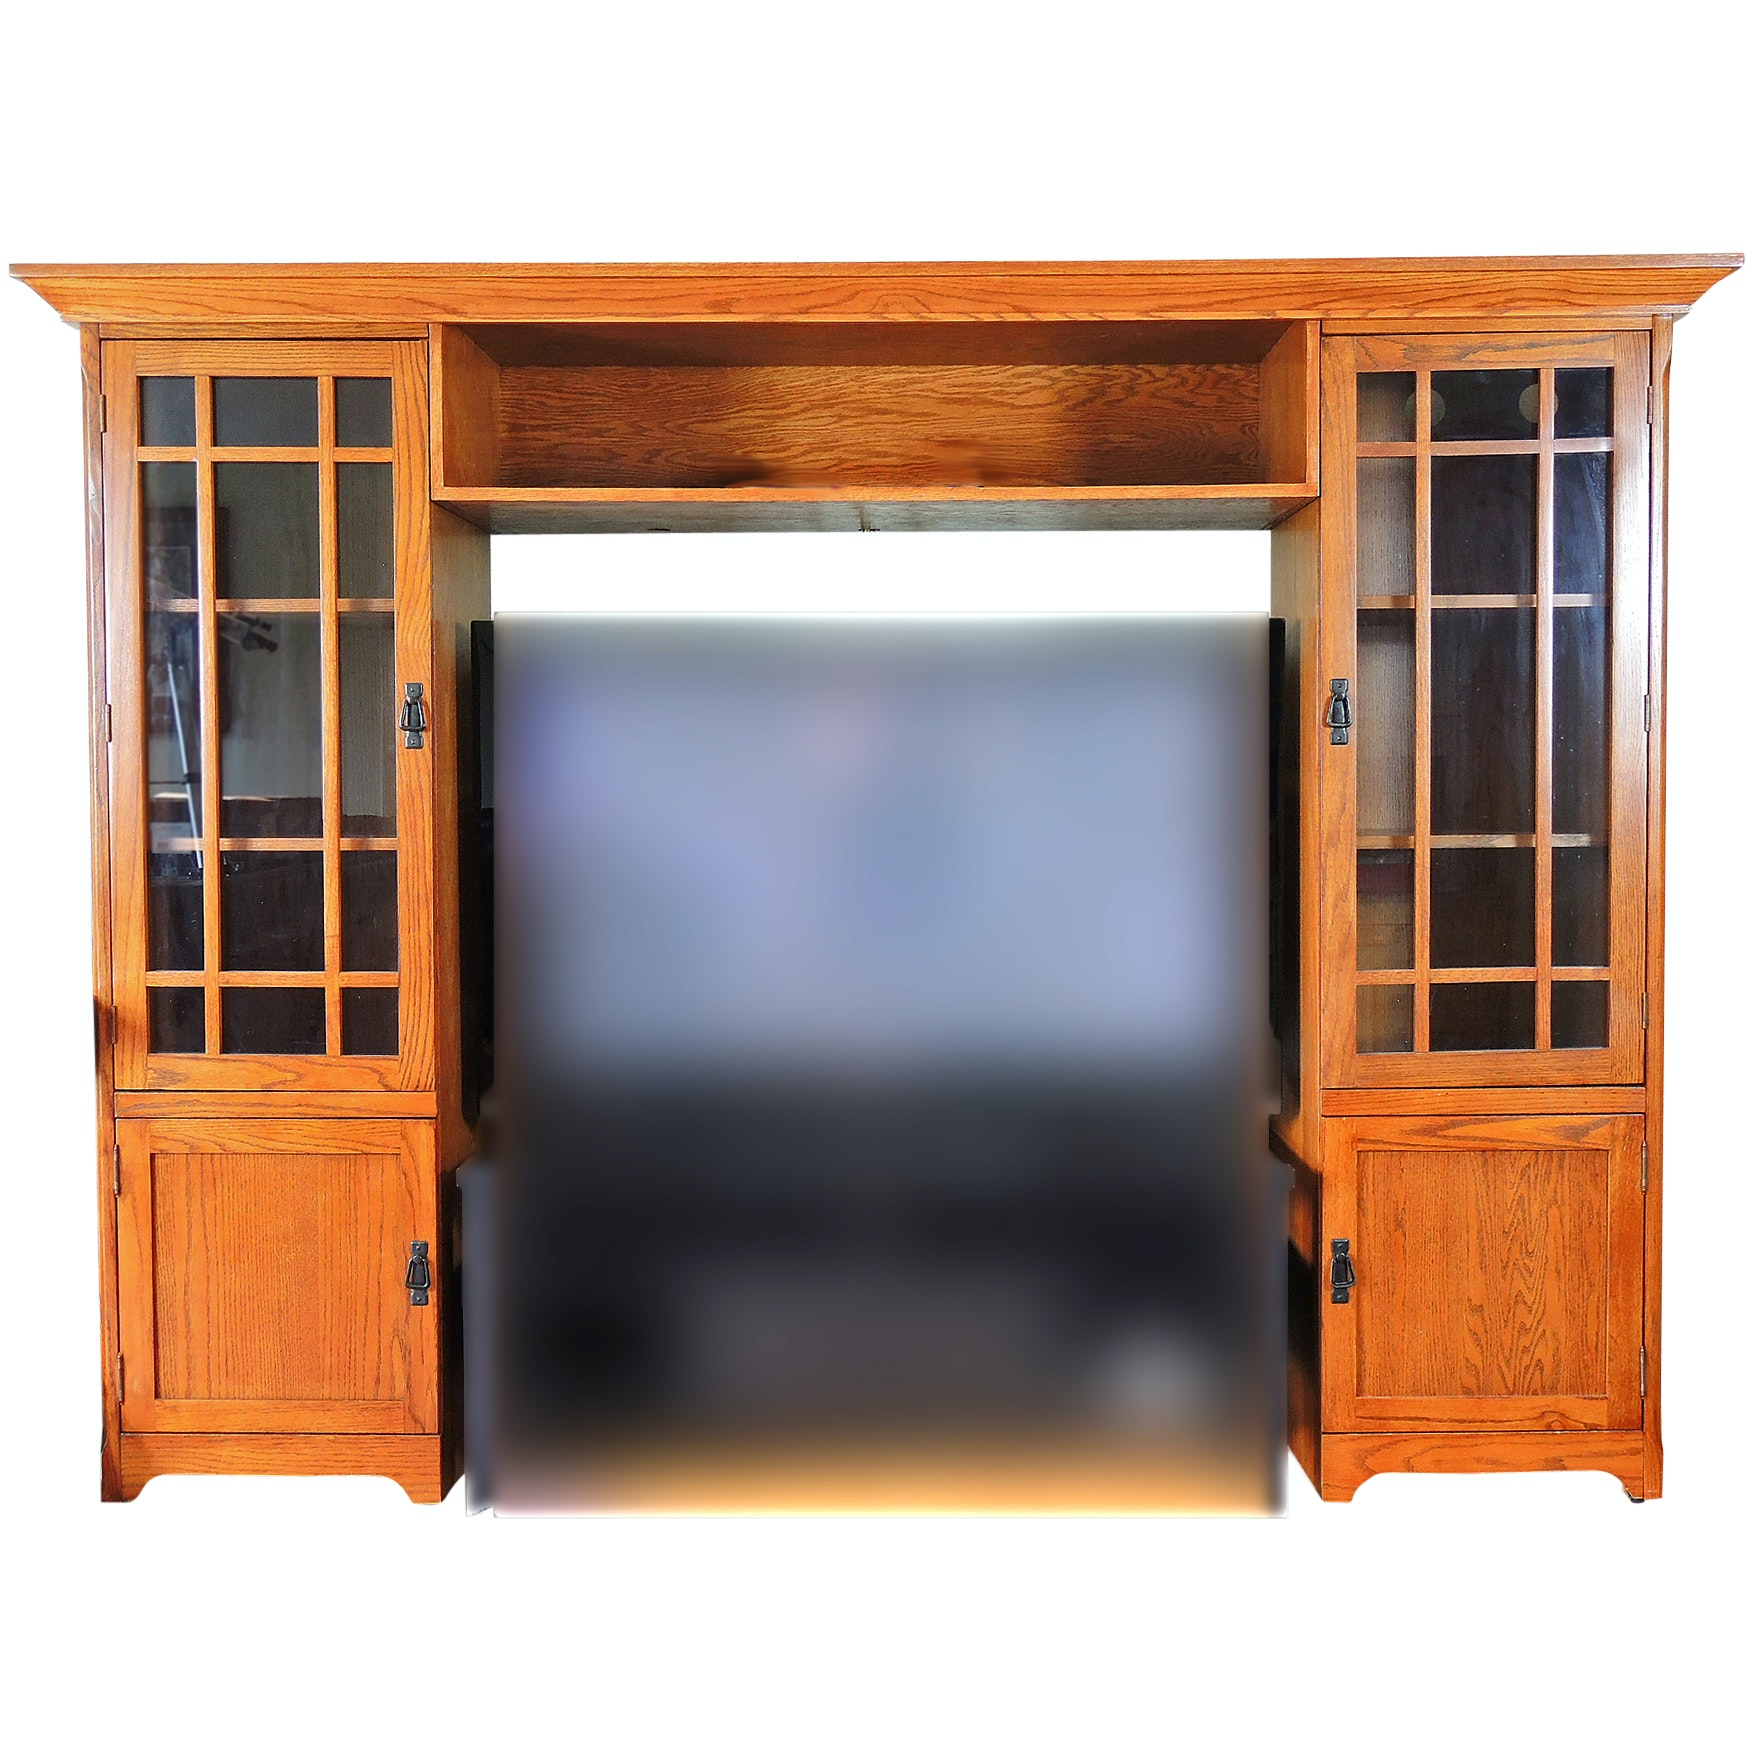 Mission Style Three-Piece Entertainment Center